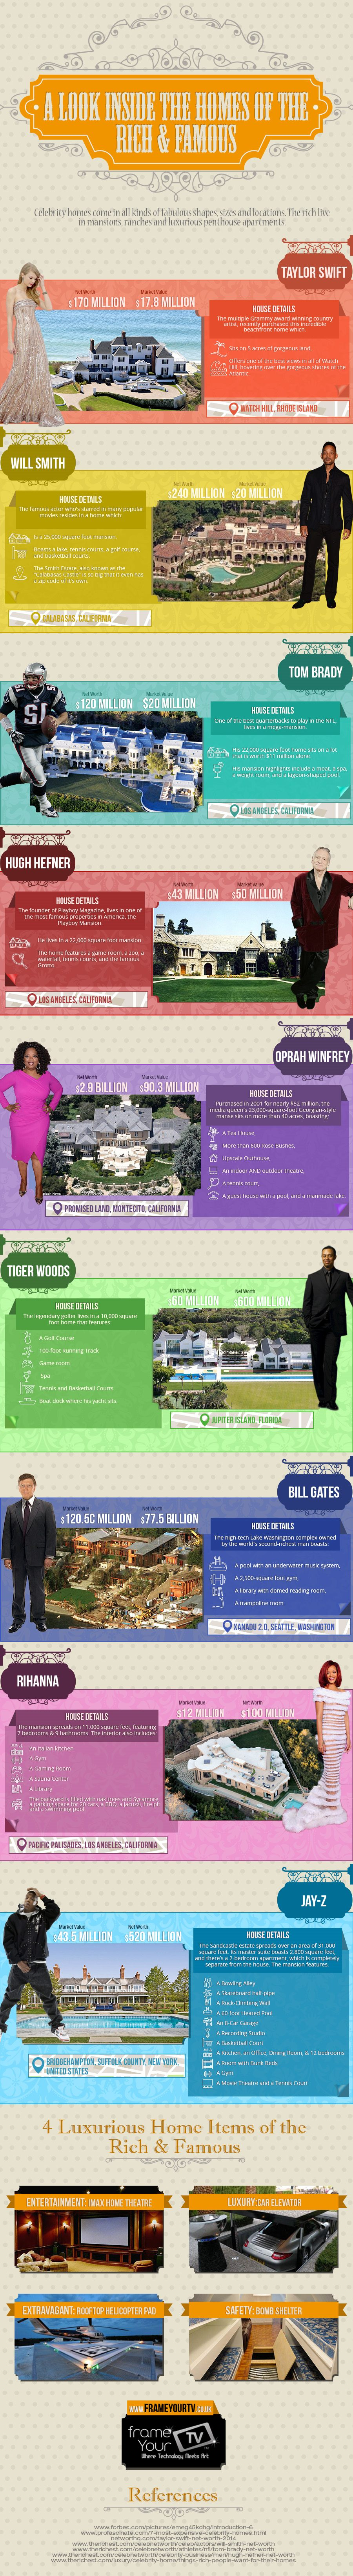 inside the homes of the rich and famous infographic